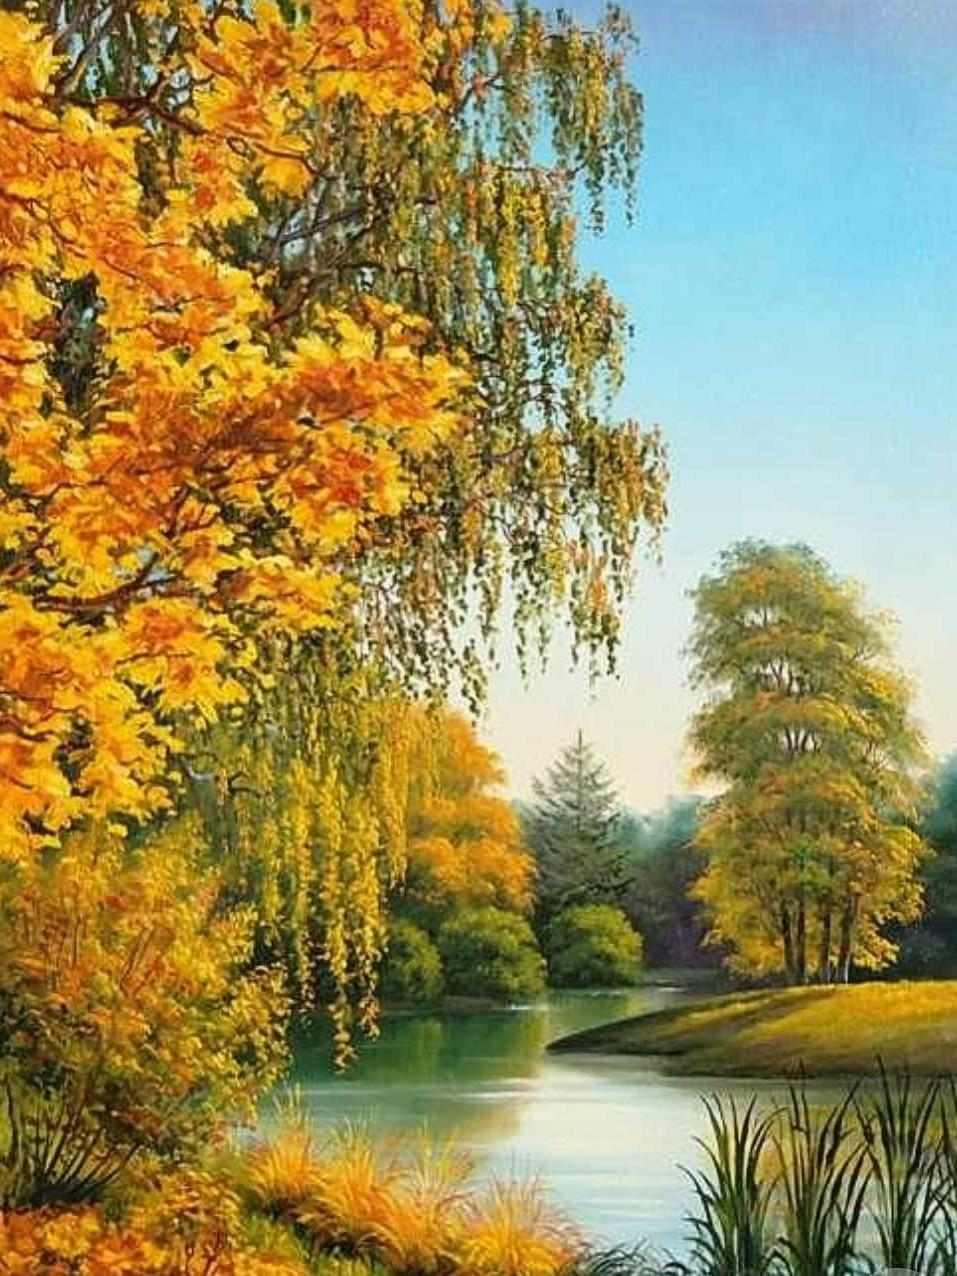 Russian Landscapes in Autumn - diamond-painting-bliss.myshopify.com